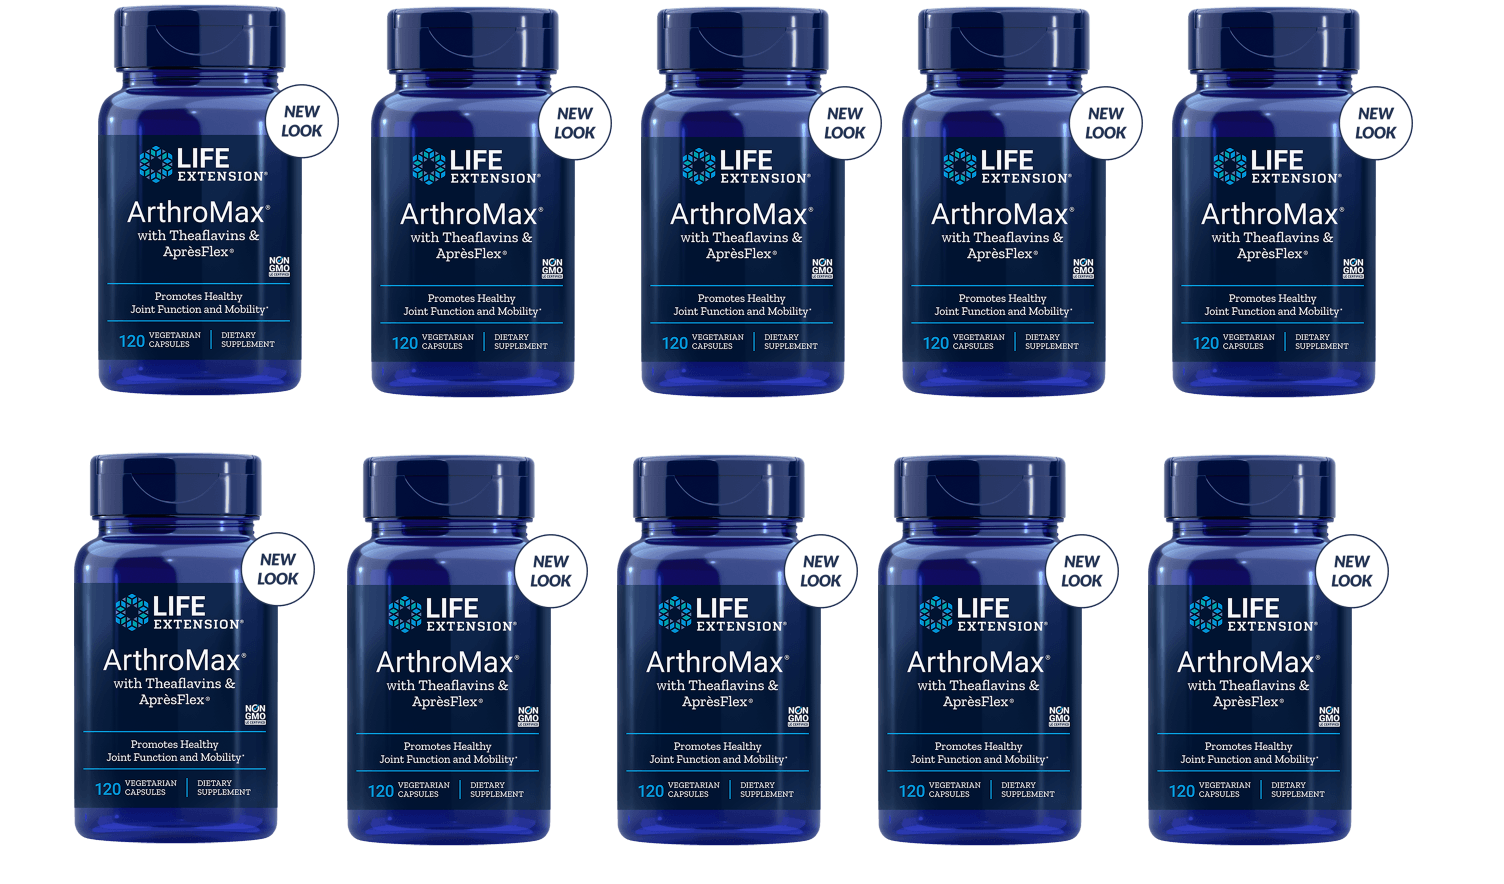 Life Extension Arthromax With Theaflavins & Aprèsflex, 10-pack